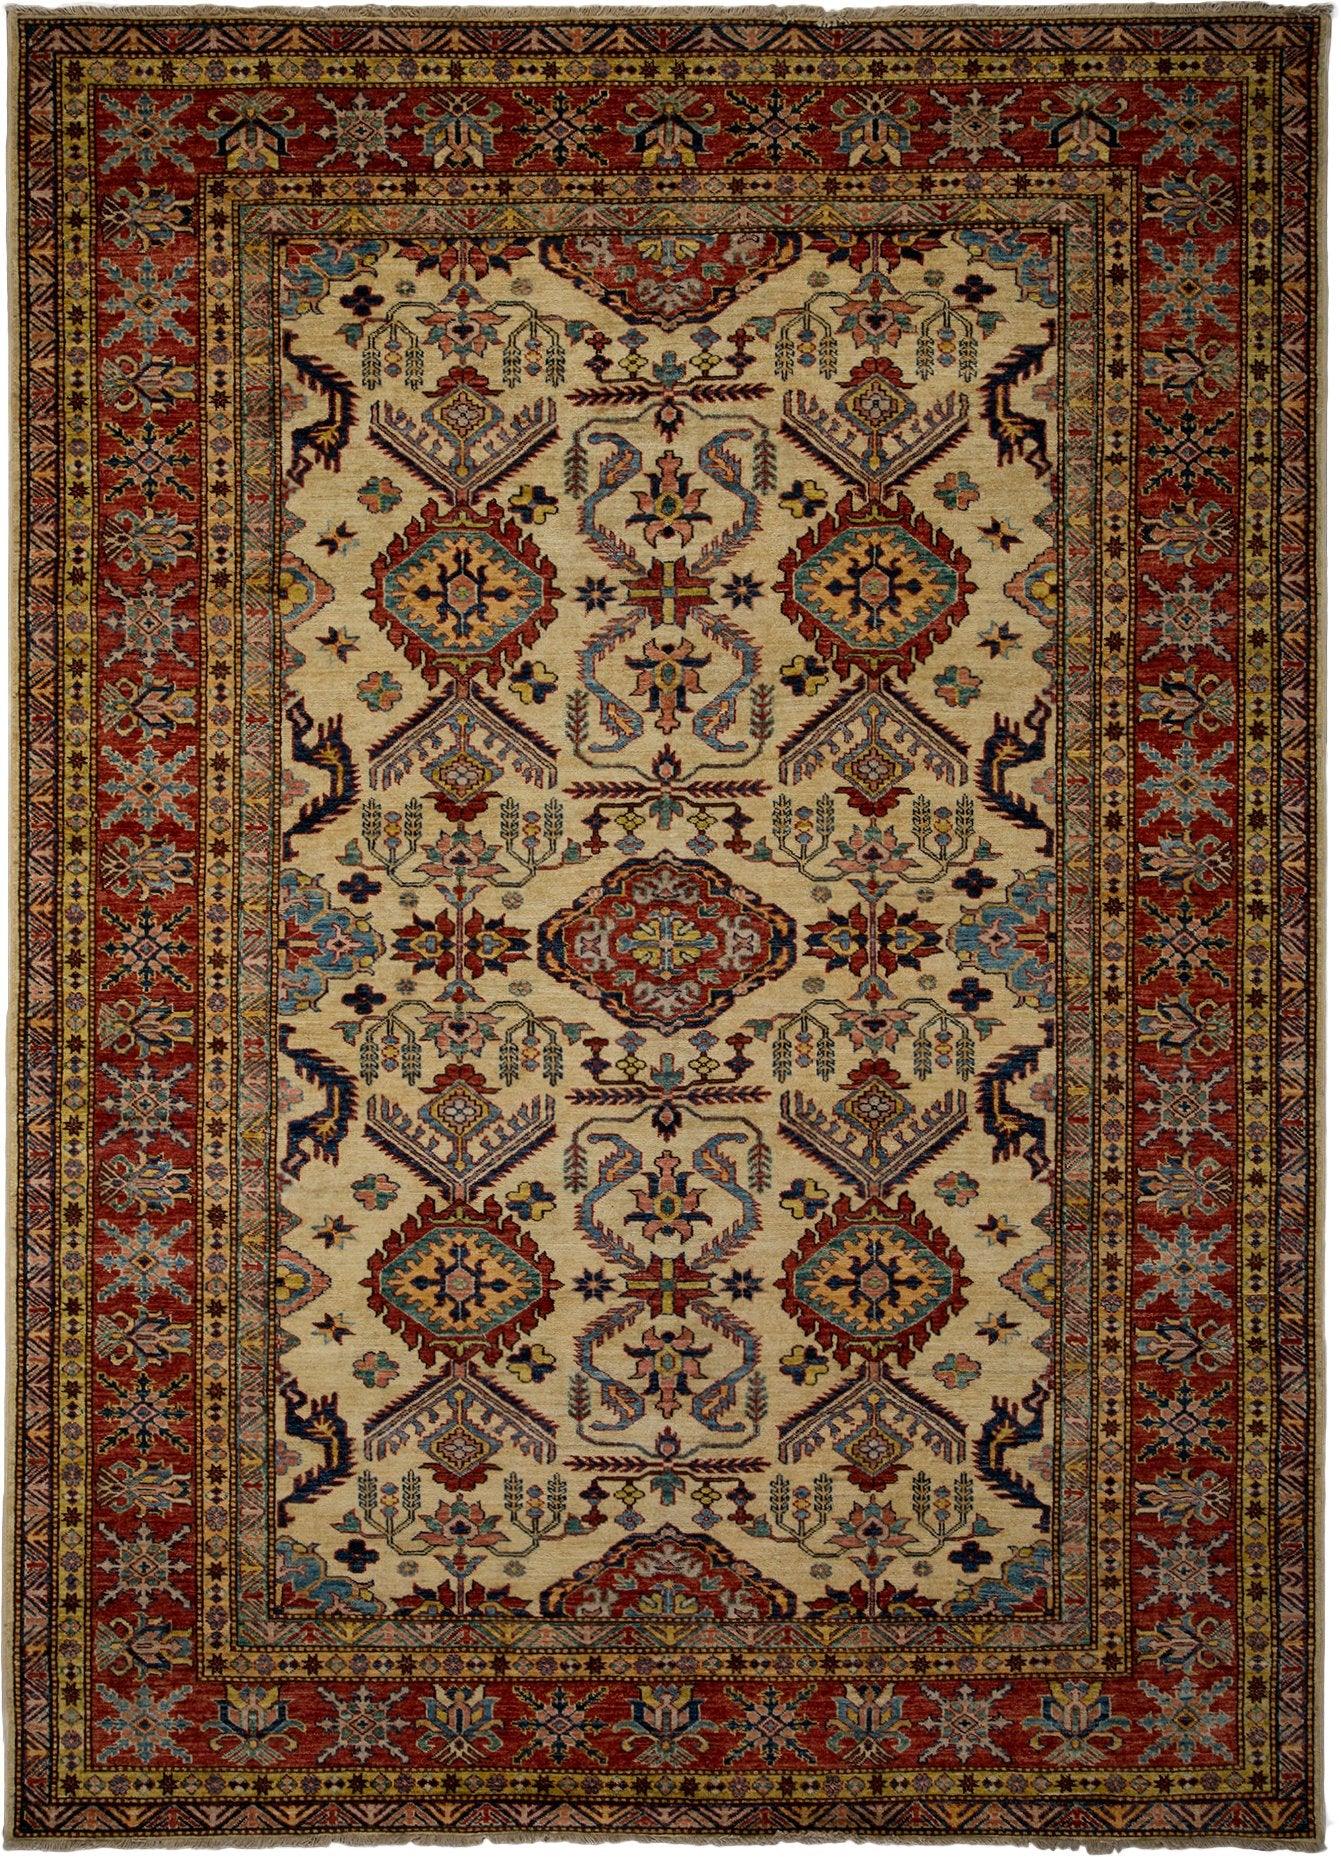 Classic Ivory Wool Area Rug 7 2 X 9 10 Lillian August